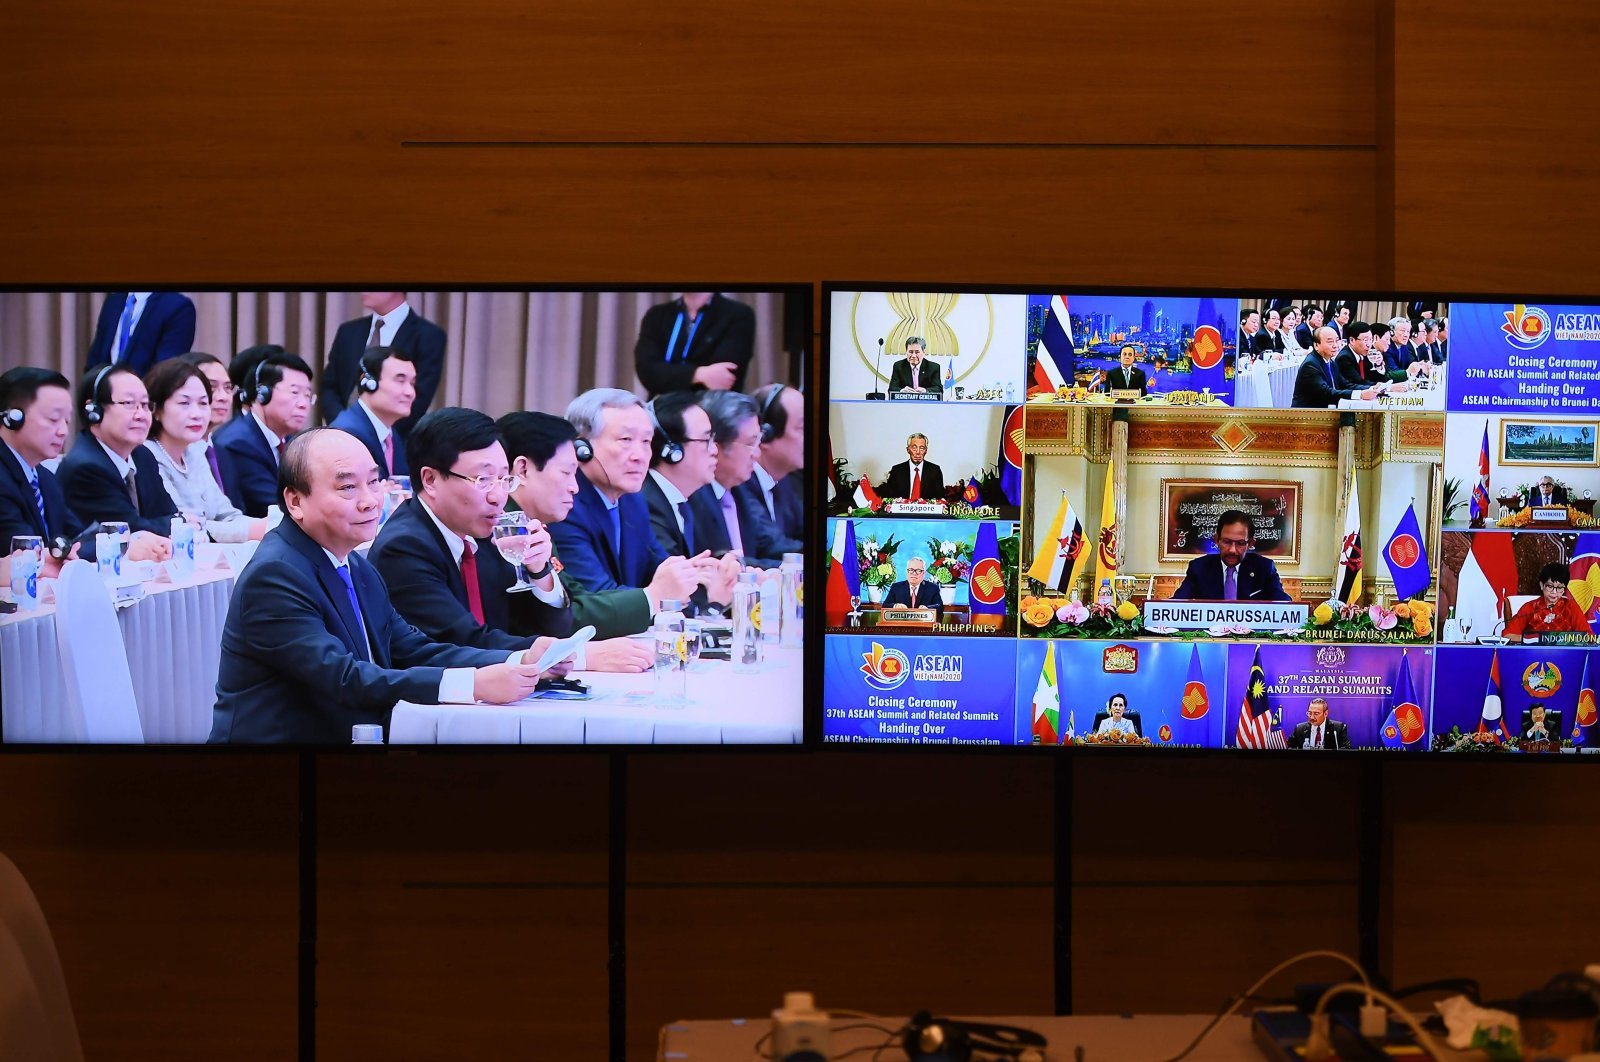 Vietnam's Prime Minister Nguyen Xuan Phuc (4th L) looks on as the next Association of Southeast Asian Nations (ASEAN) summit host Brunei's Sultan Hassanal Bolkiah (2nd R), as seen on TV monitors, addresses the ASEAN closing ceremony in Hanoi, Nov. 15, 2020. (AFP Photo)